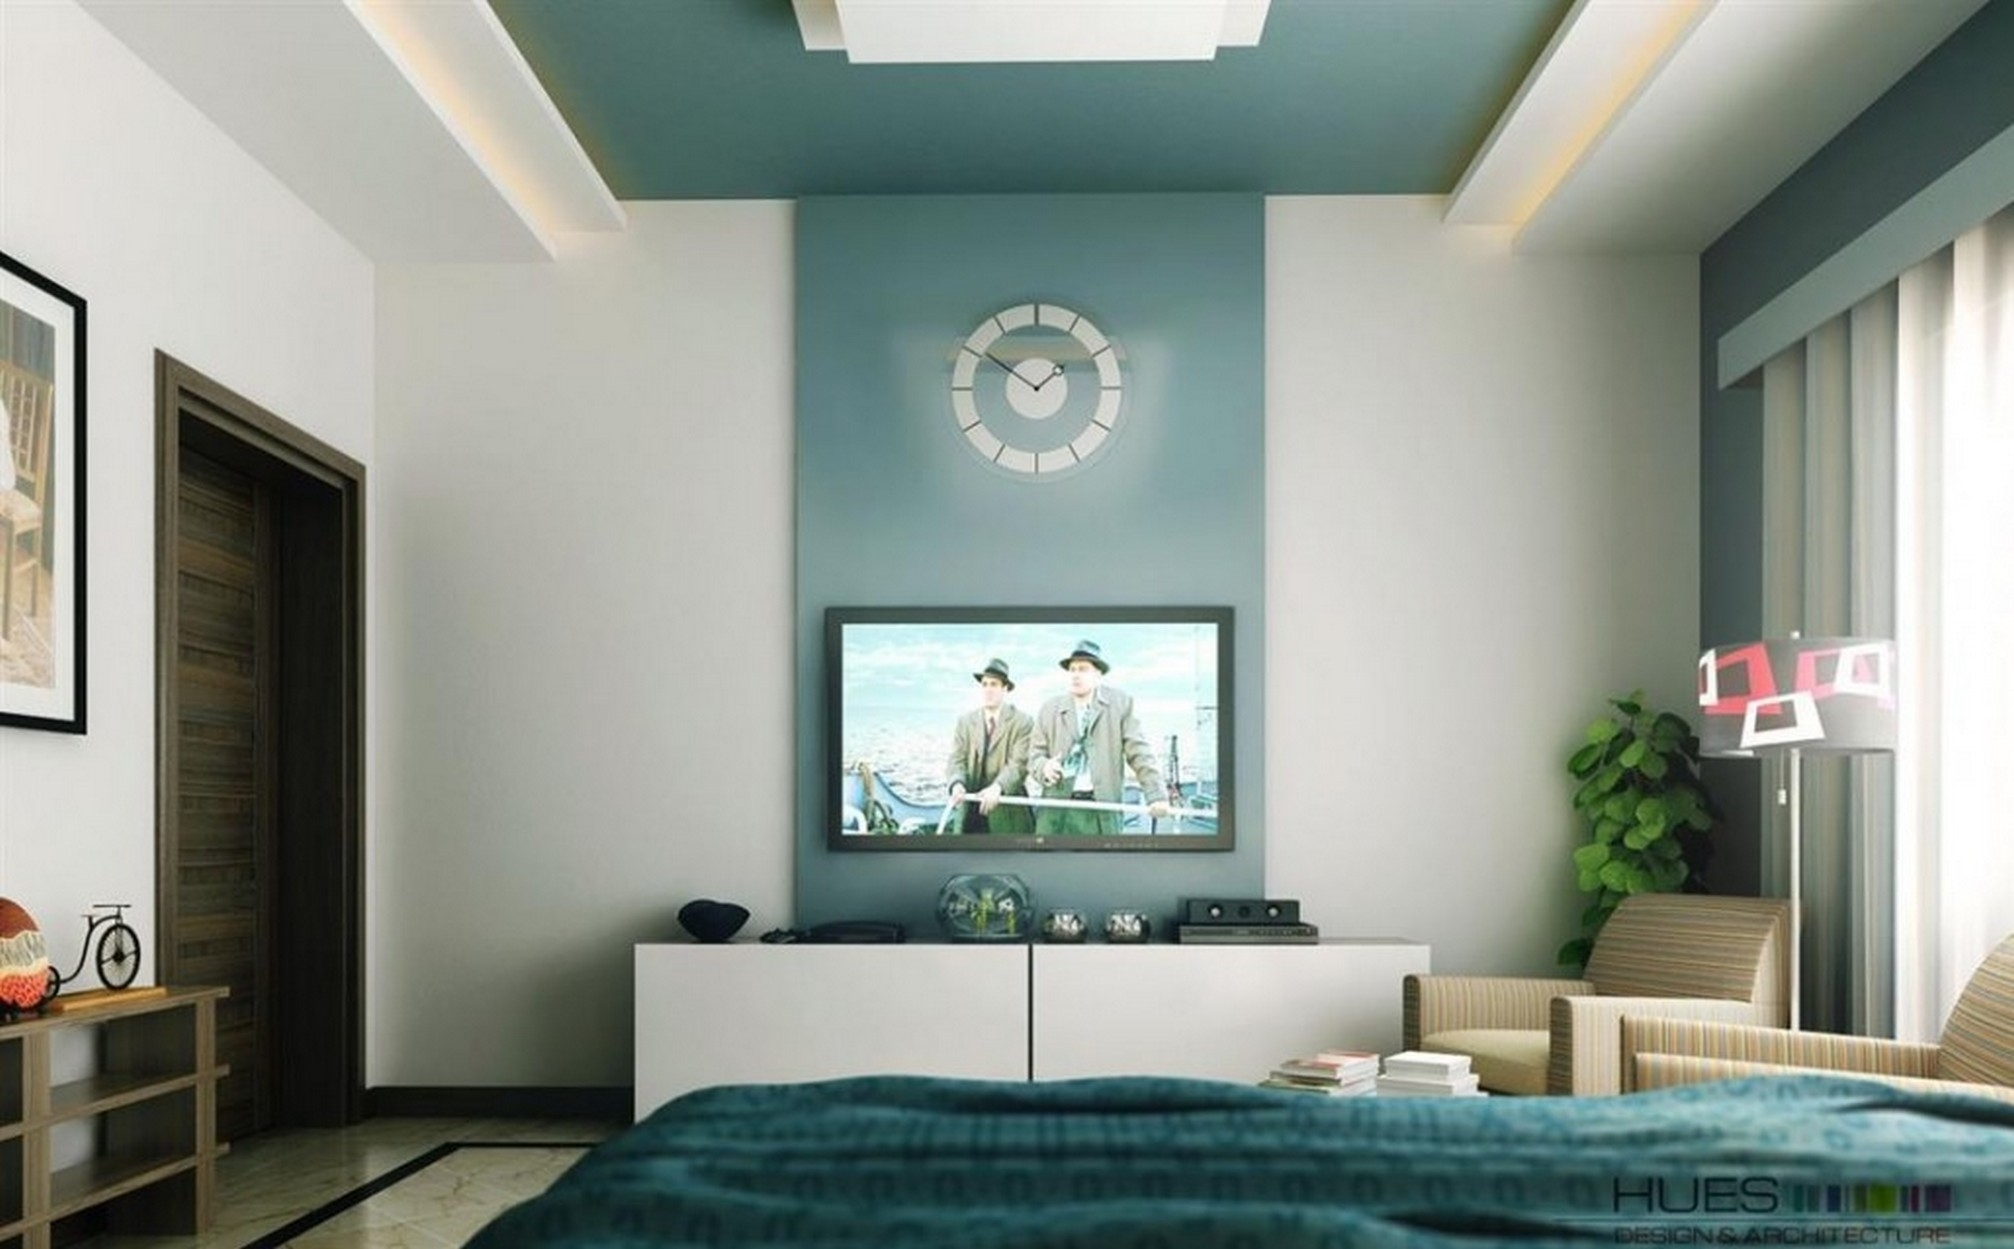 Accent Wall Color For High Walls With Round Clock Ideas And Tv On For Most Popular Wall Accents Behind Tv (View 4 of 15)